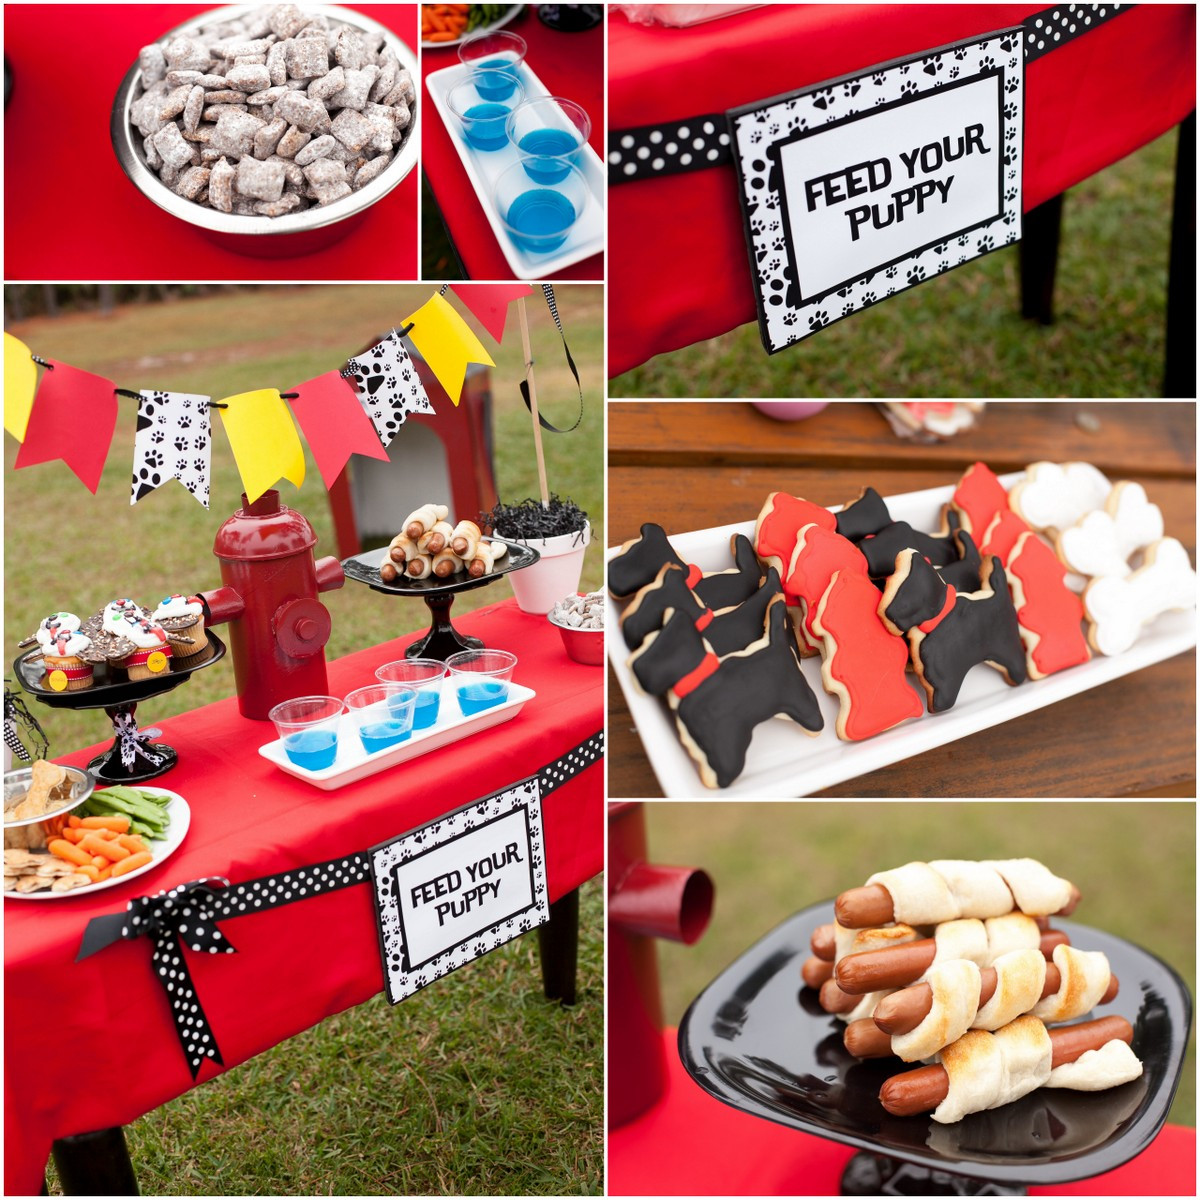 Puppy Birthday Decorations  20 Easy Ideas for a Puppy Party on a Bud Page 3 of 6